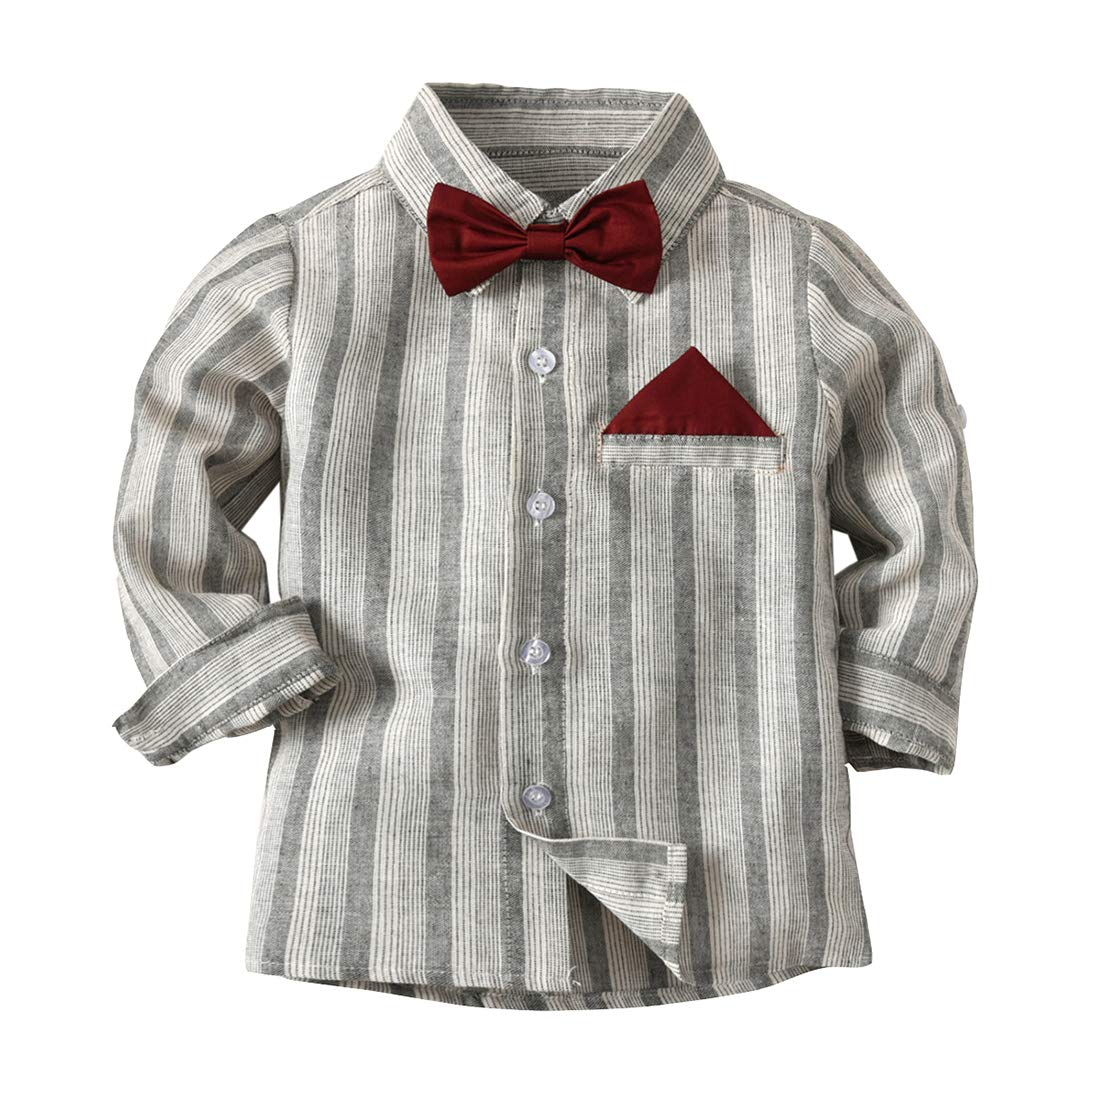 Fairy Baby Little Boys Gentleman Outfit Casual Long Sleeve Striped Formal Shirt with Bow Size 6T (Gray)